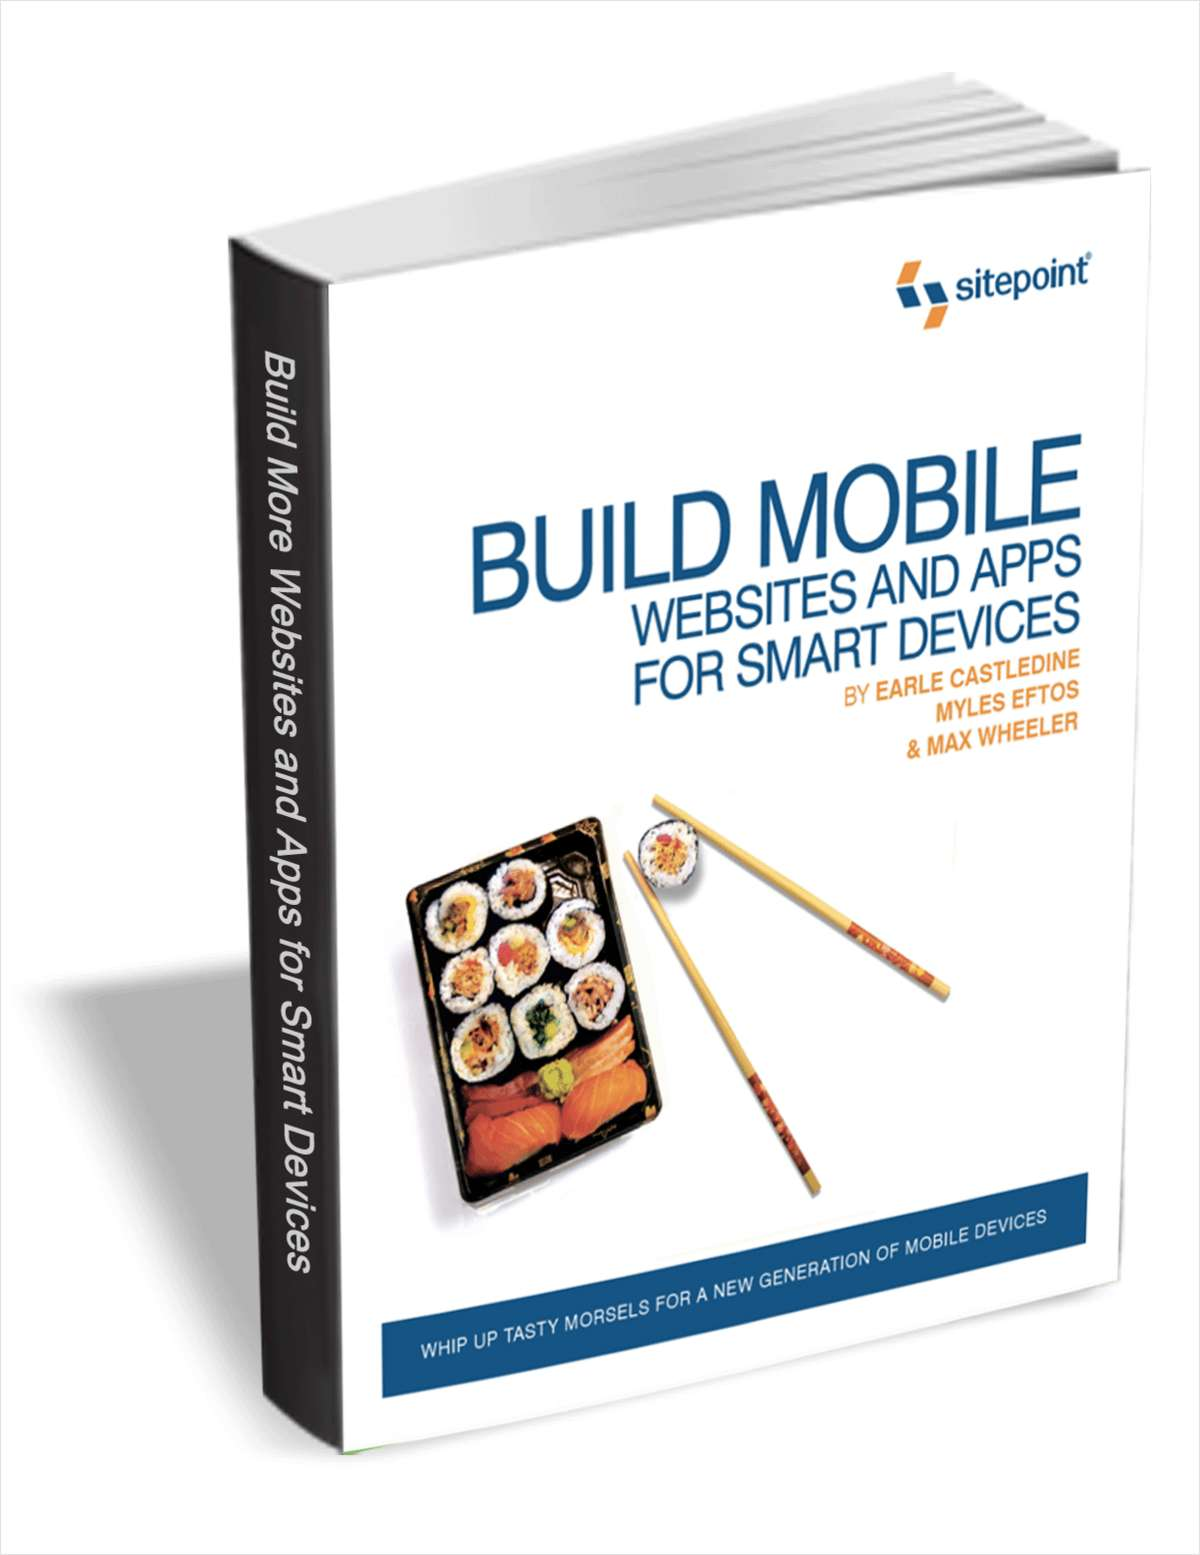 Build Mobile Websites and Apps for Smart Devices (a $30 FREE!)